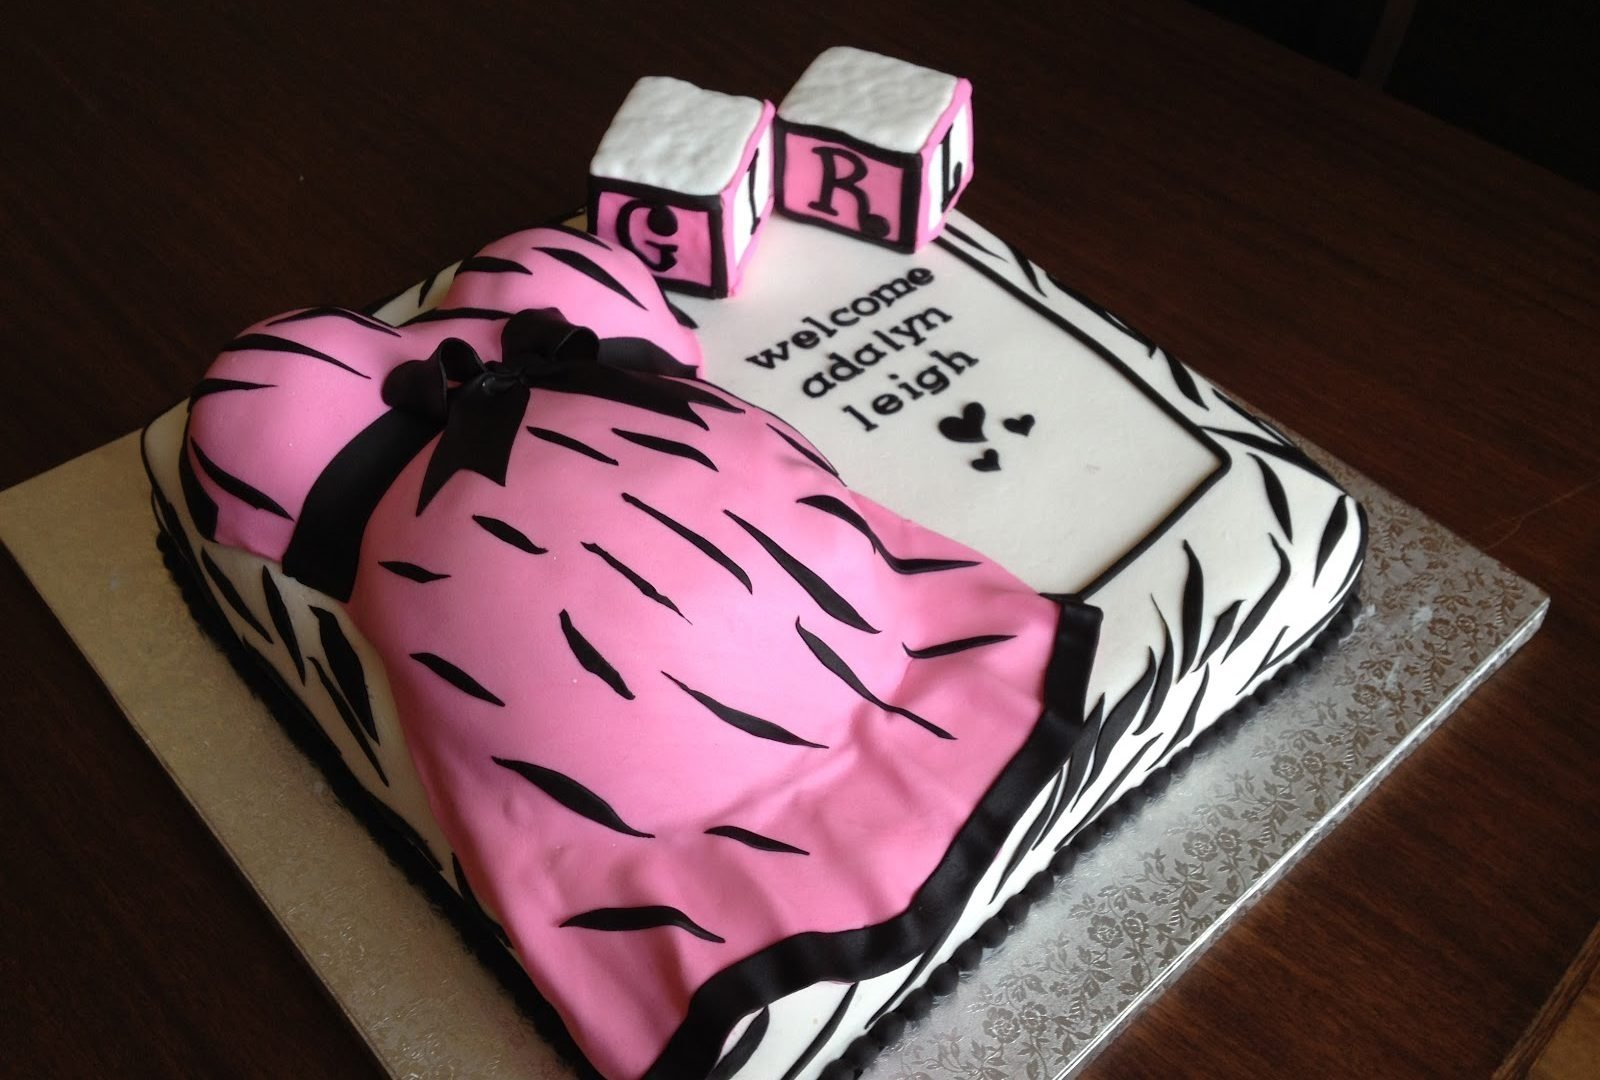 10 Perfect Pink And Black Baby Shower Ideas unforgettable pink and black baby shower ideas girl white hot zebra 2021